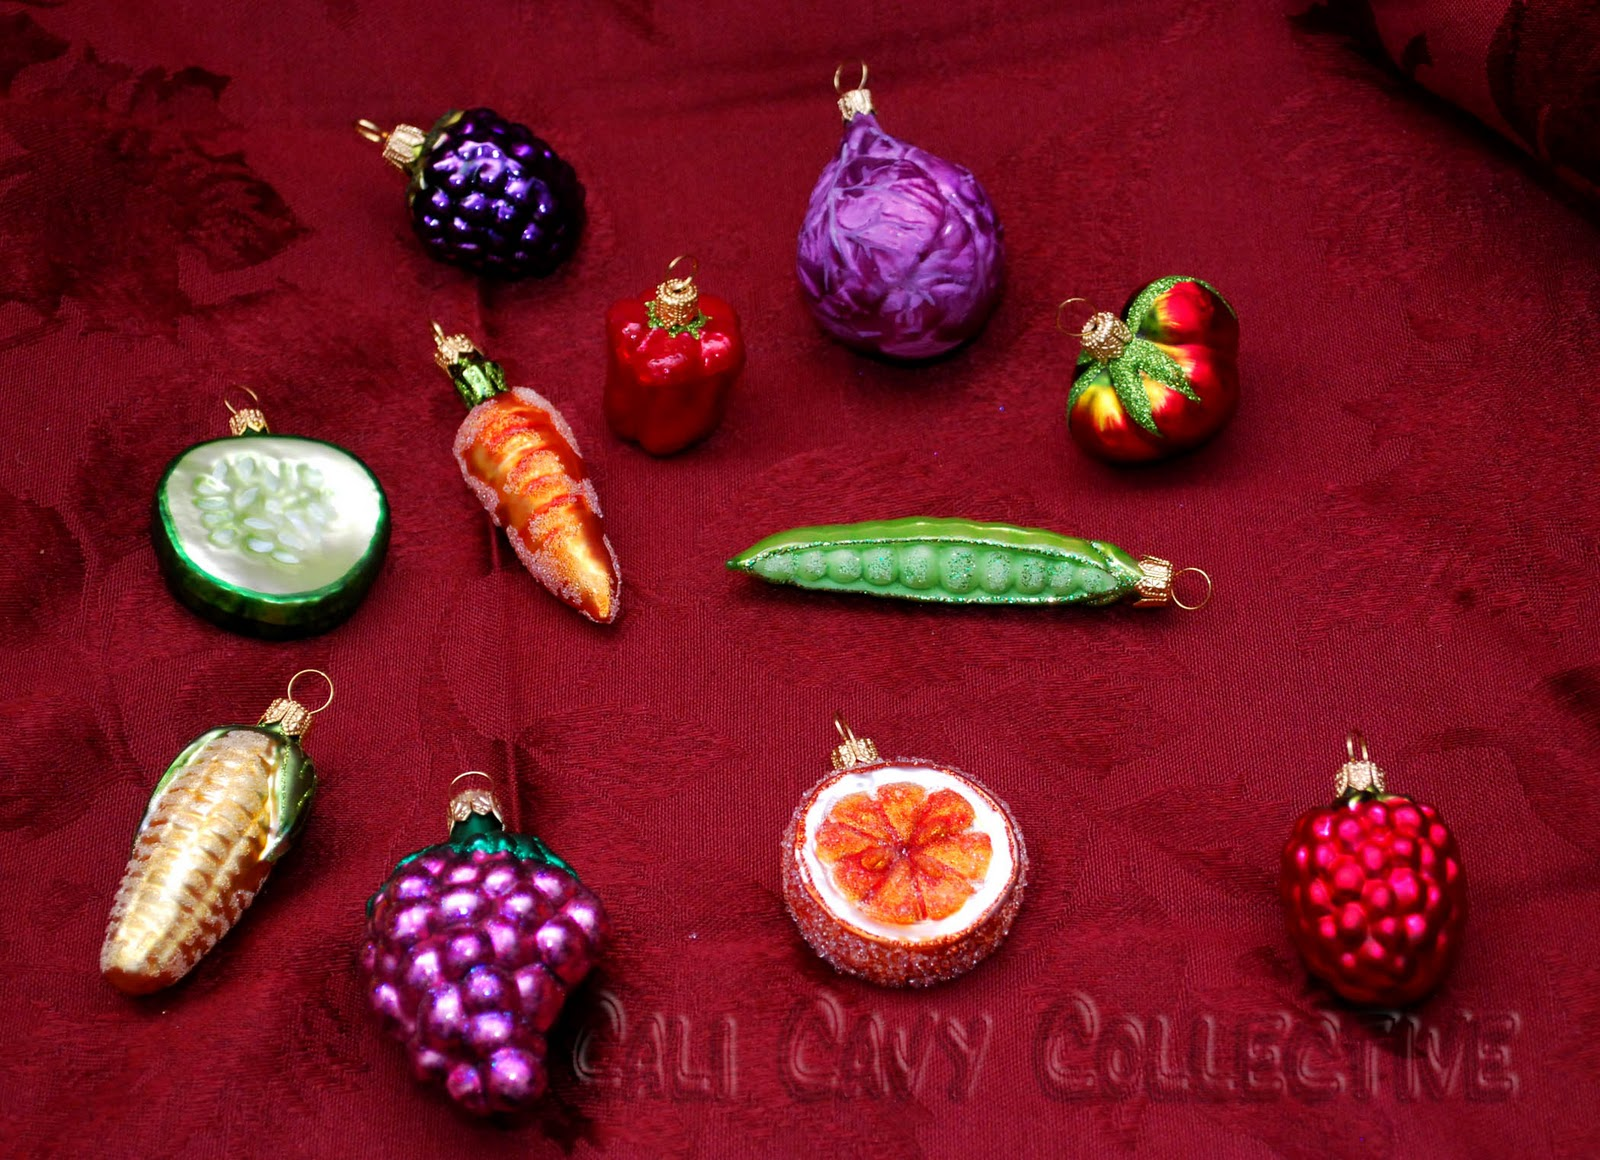 Pig christmas ornaments - About All Things Guinea Pig Decorating Our Guinea Pig Christmas Tree